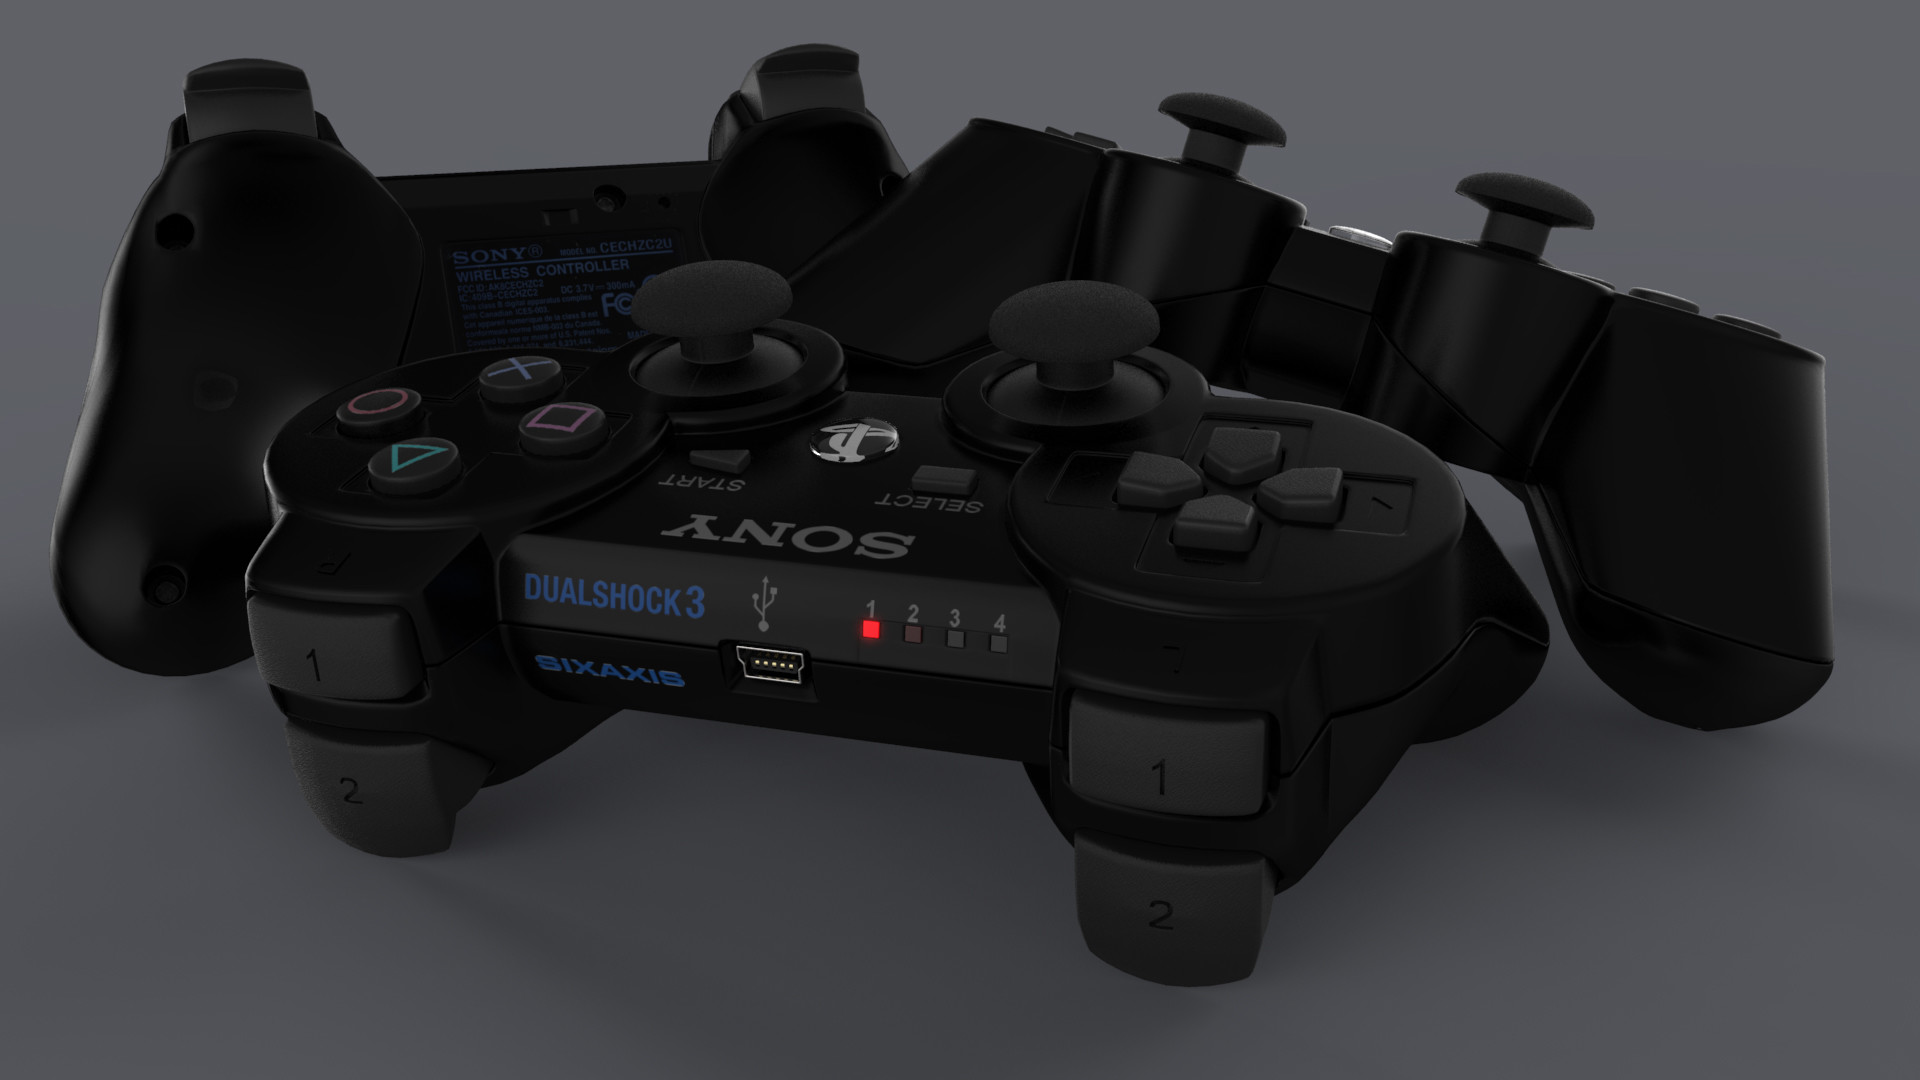 Res: 1920x1080, Images Galleries : KO-44449699 Ps3 Controller Wallpaper